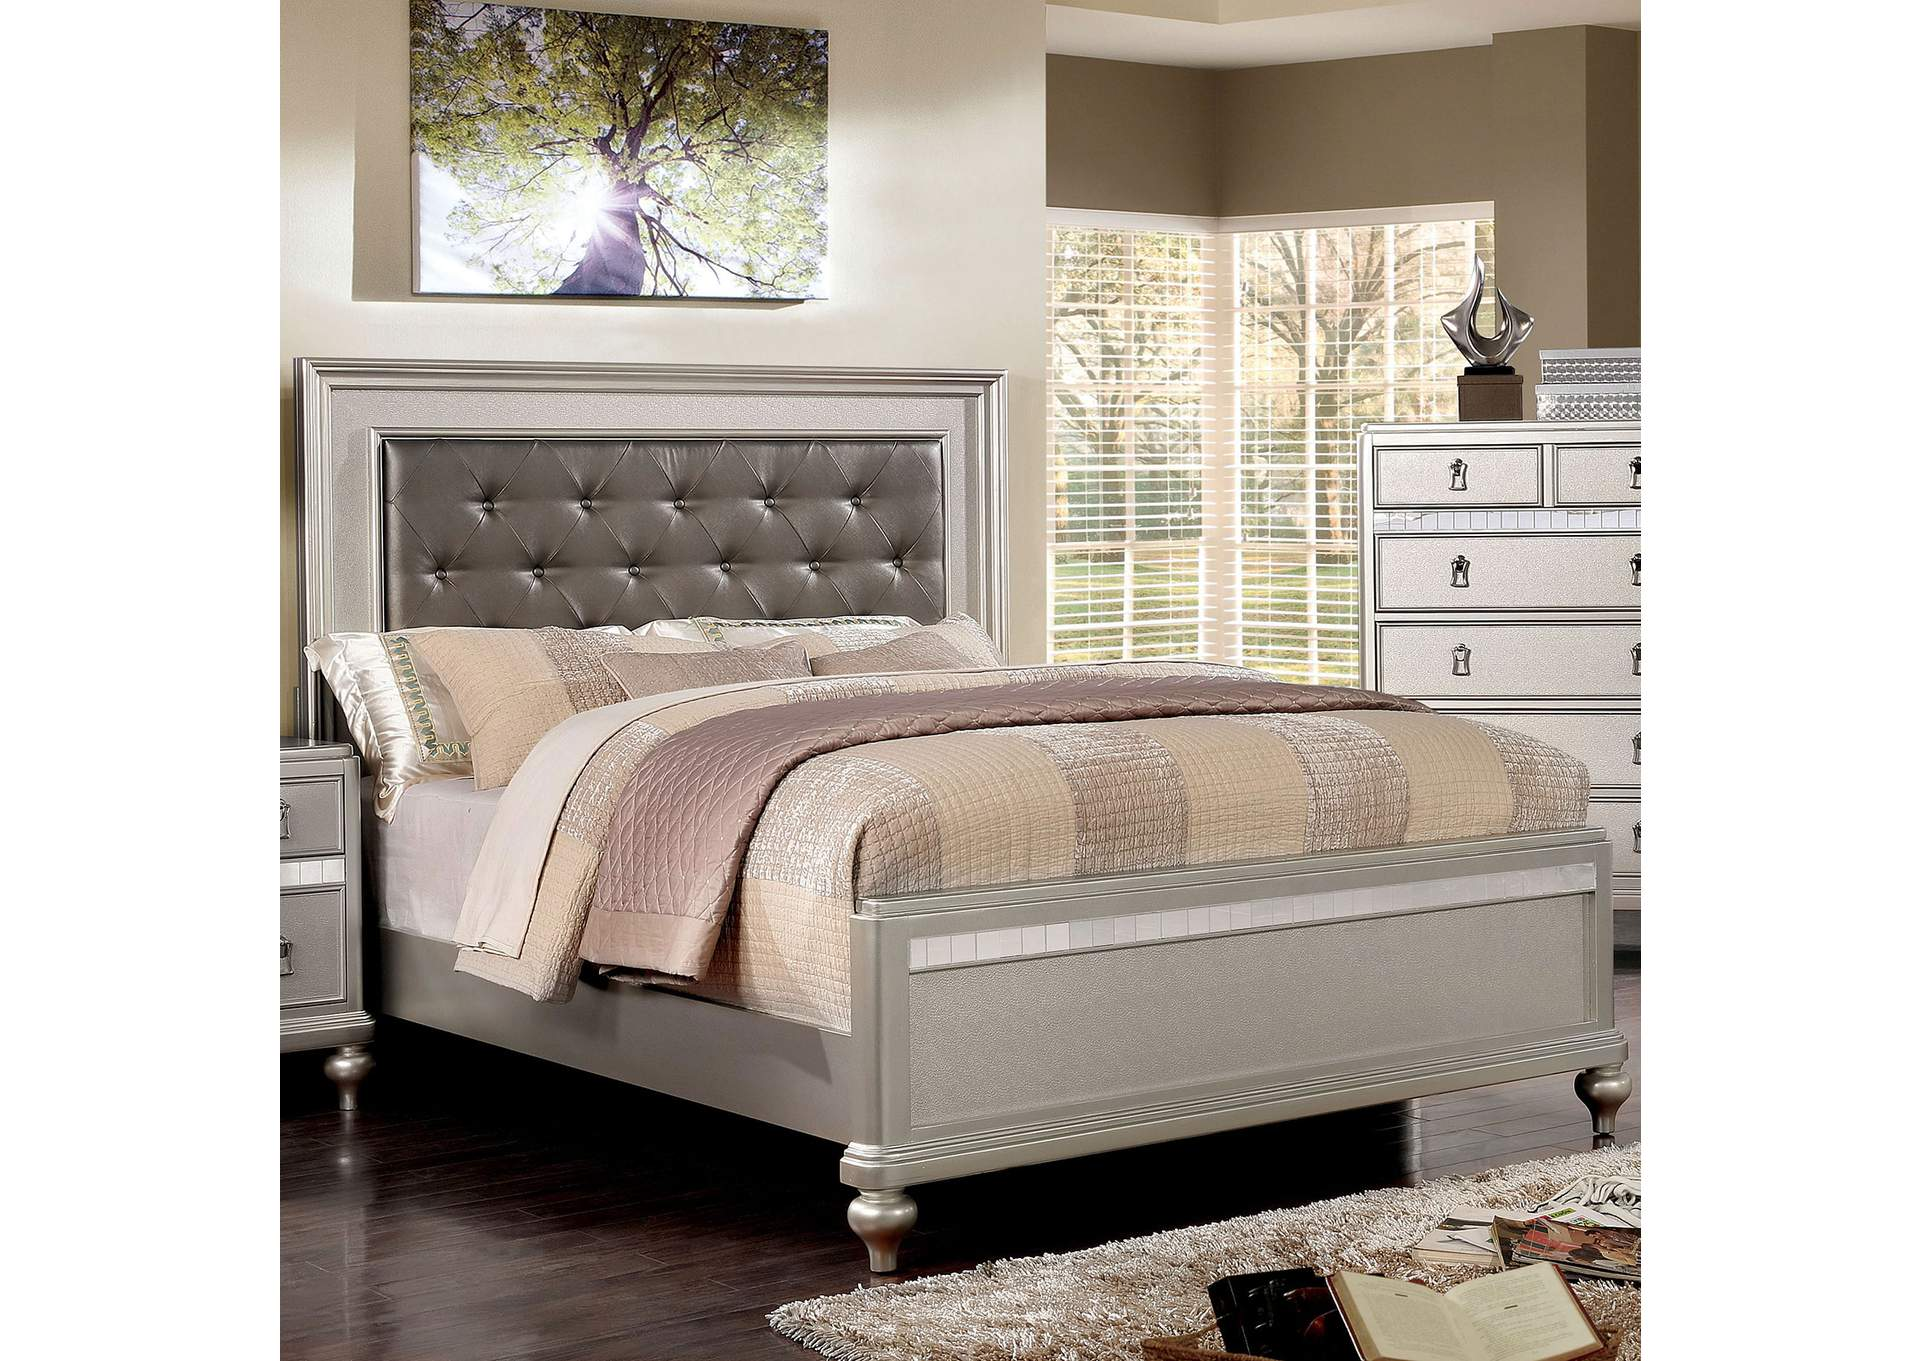 Avior Silver Queen Platform Bed,Furniture of America